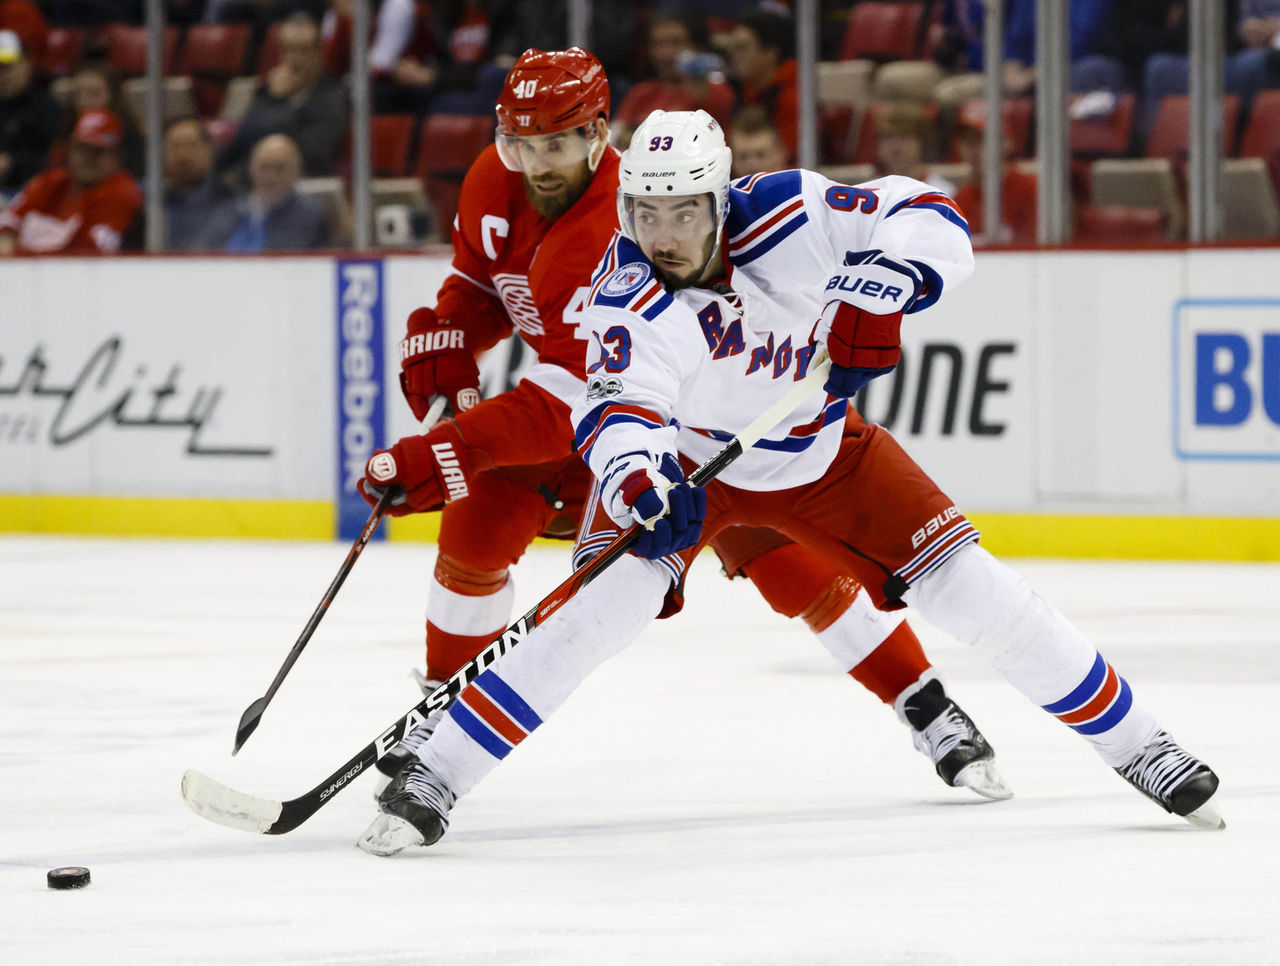 Cropped 2017 01 22t193556z 1534862933 nocid rtrmadp 3 nhl new york rangers at detroit red wings